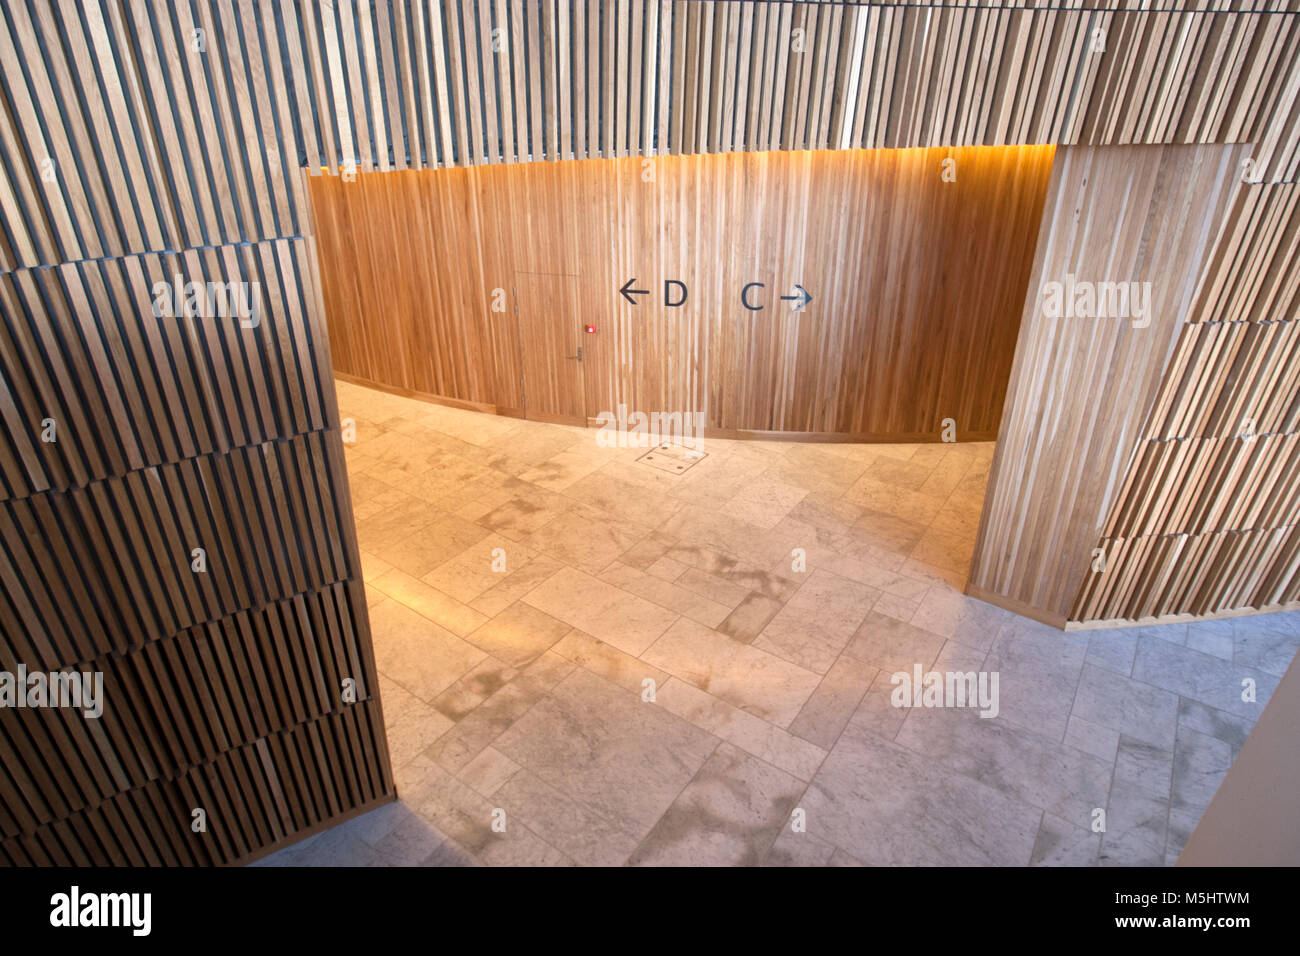 Seating Areas C And D In Interior Of Oslo Opera House With The Waving Wood  Wall, Snøhetta Architect, Oslo, Norway